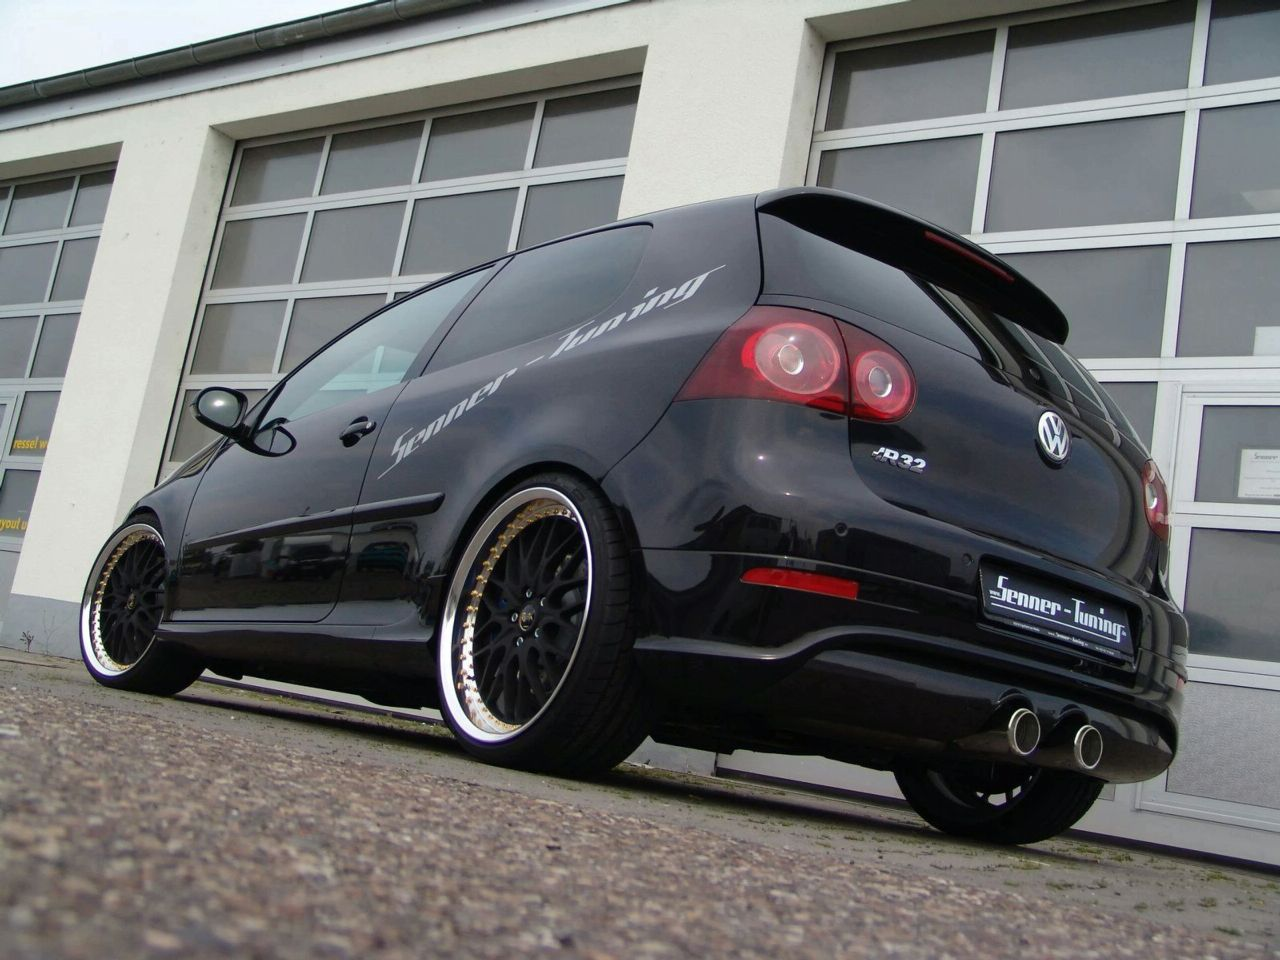 vw golf v r32 by senner tuning. Black Bedroom Furniture Sets. Home Design Ideas